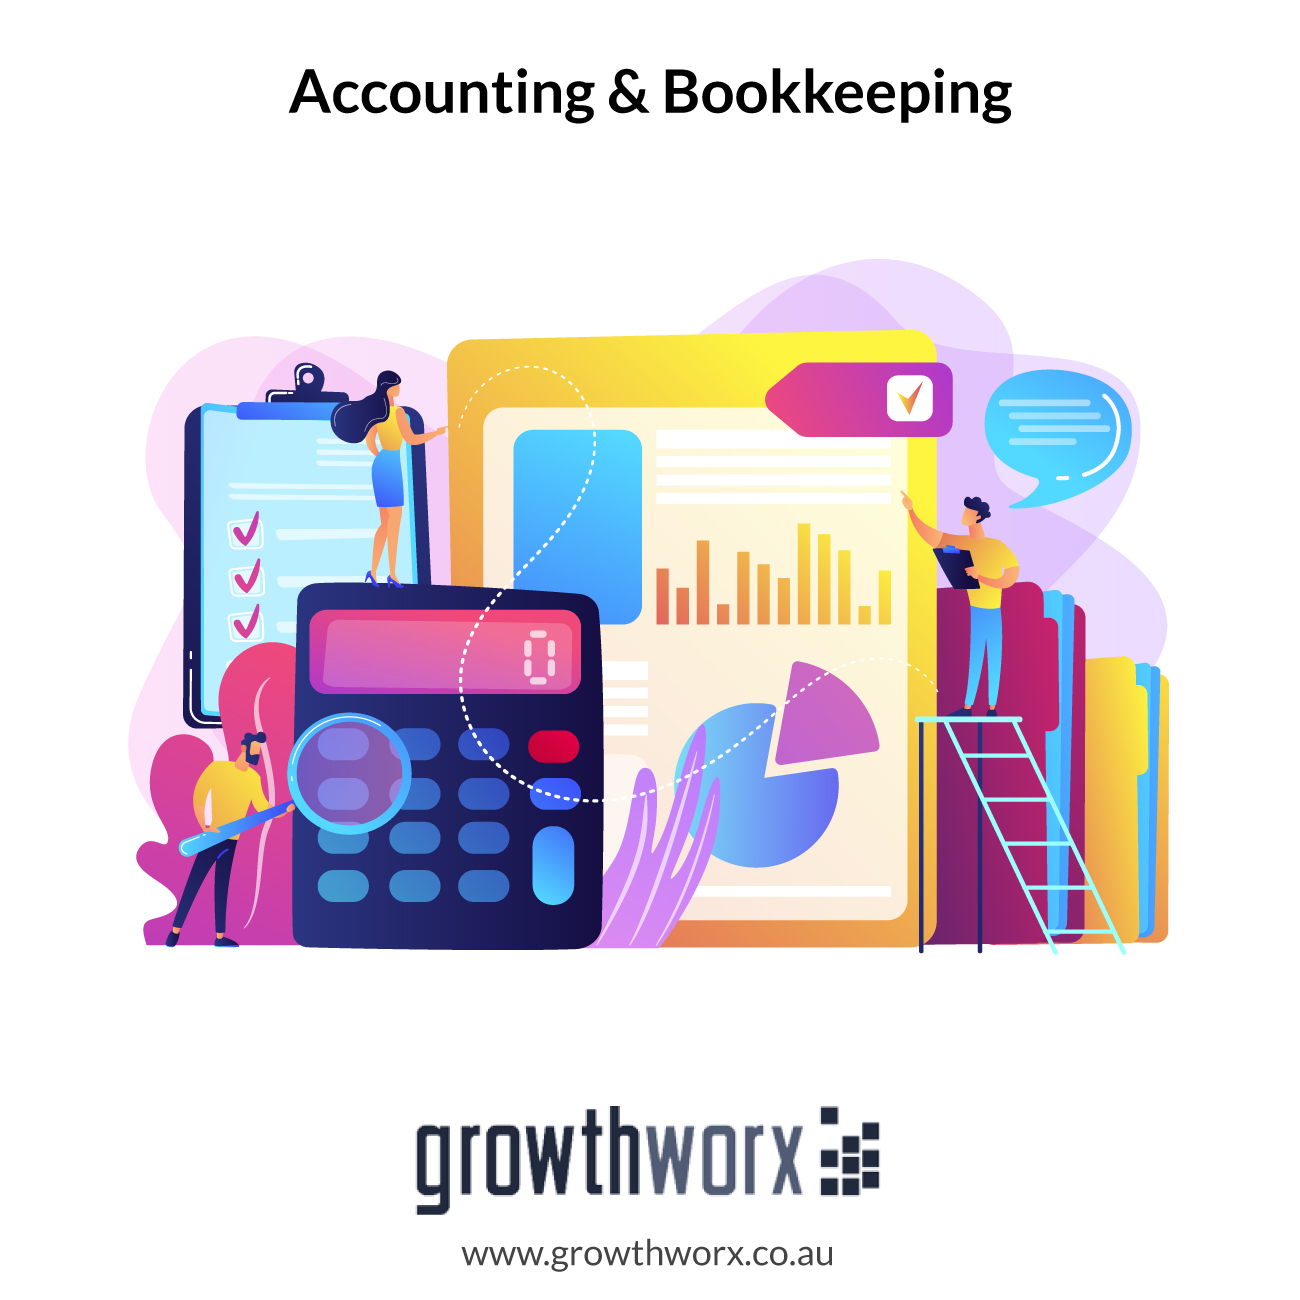 Business Financial Consulting I will do accounting, finance, bookkeeping, and excel work 1